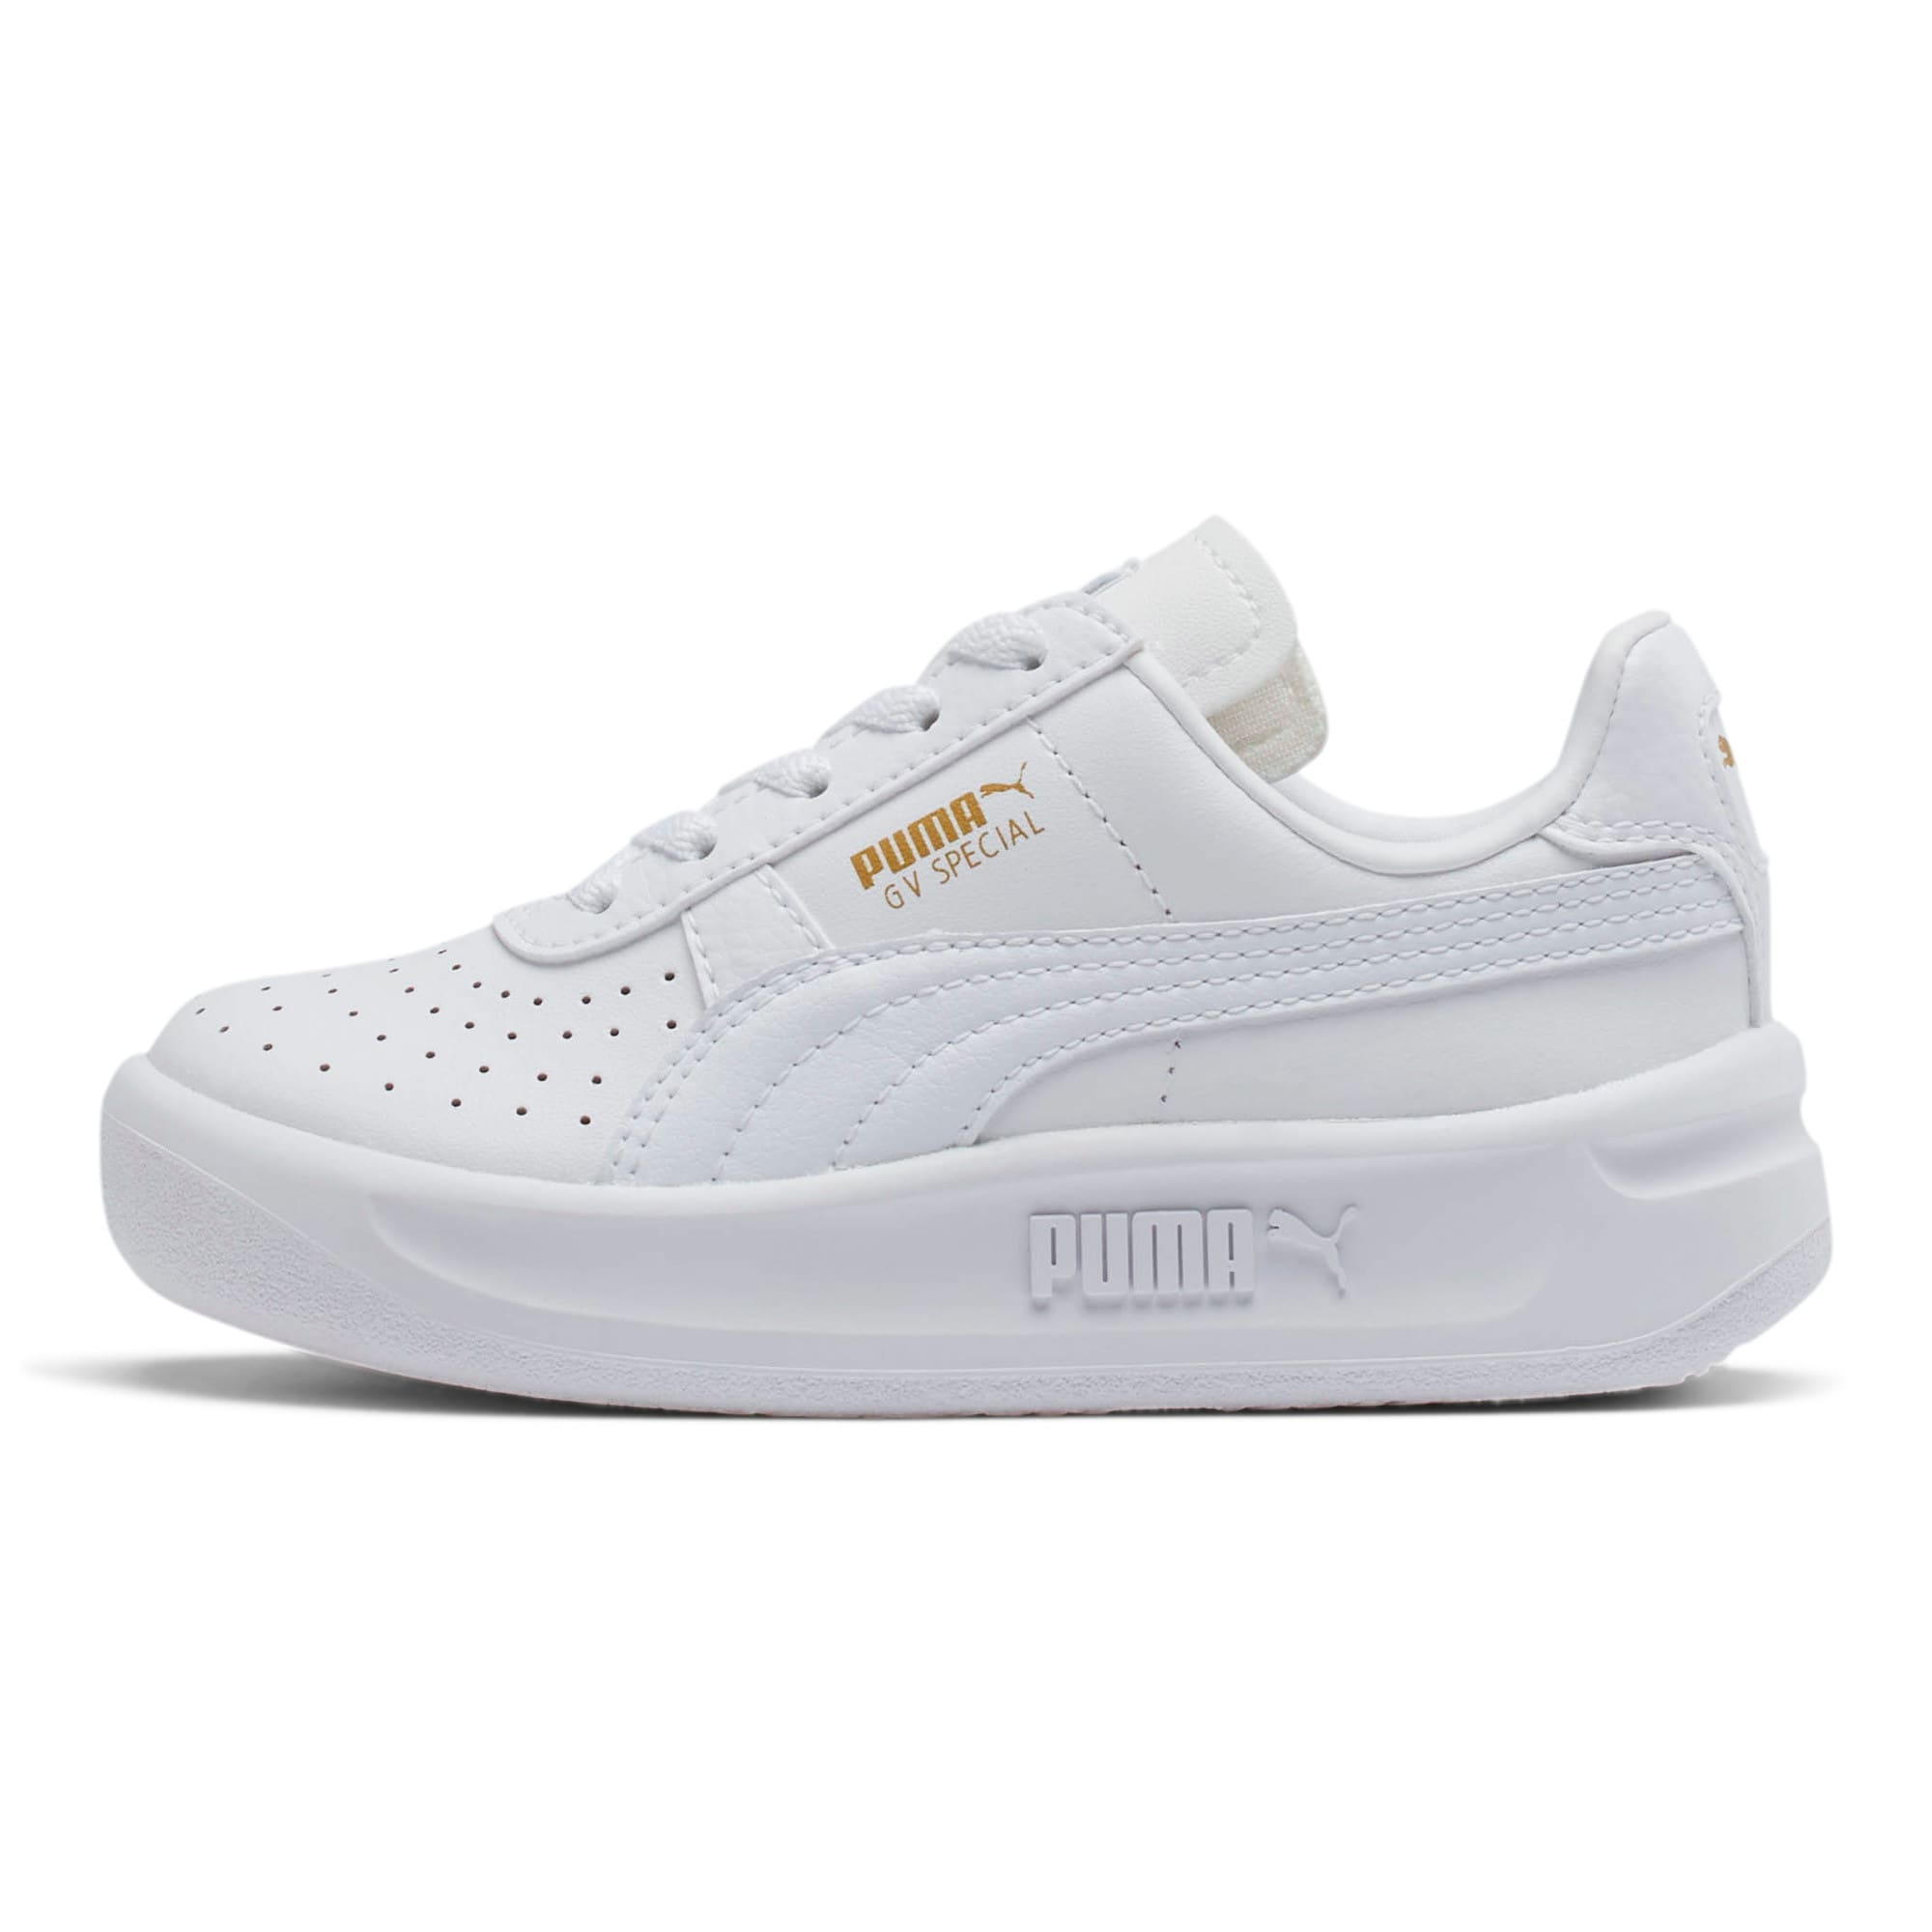 GV Special Little Kids' Shoes, Puma White-Puma Team Gold, large